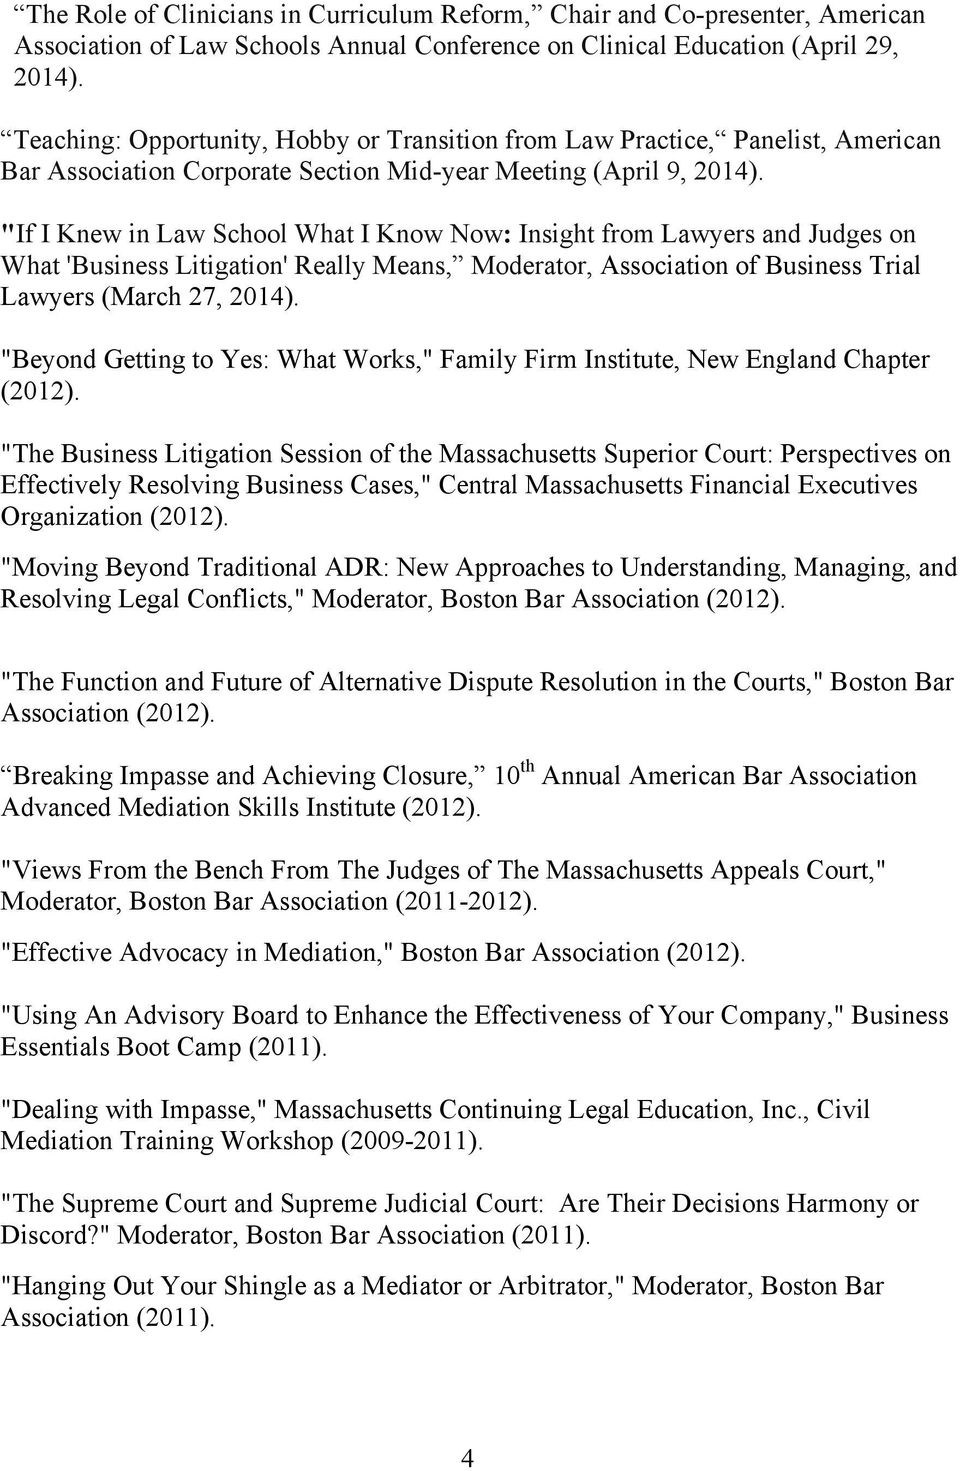 """If I Knew in Law School What I Know Now: Insight from Lawyers and Judges on What 'Business Litigation' Really Means, Moderator, Association of Business Trial Lawyers (March 27, 2014)."